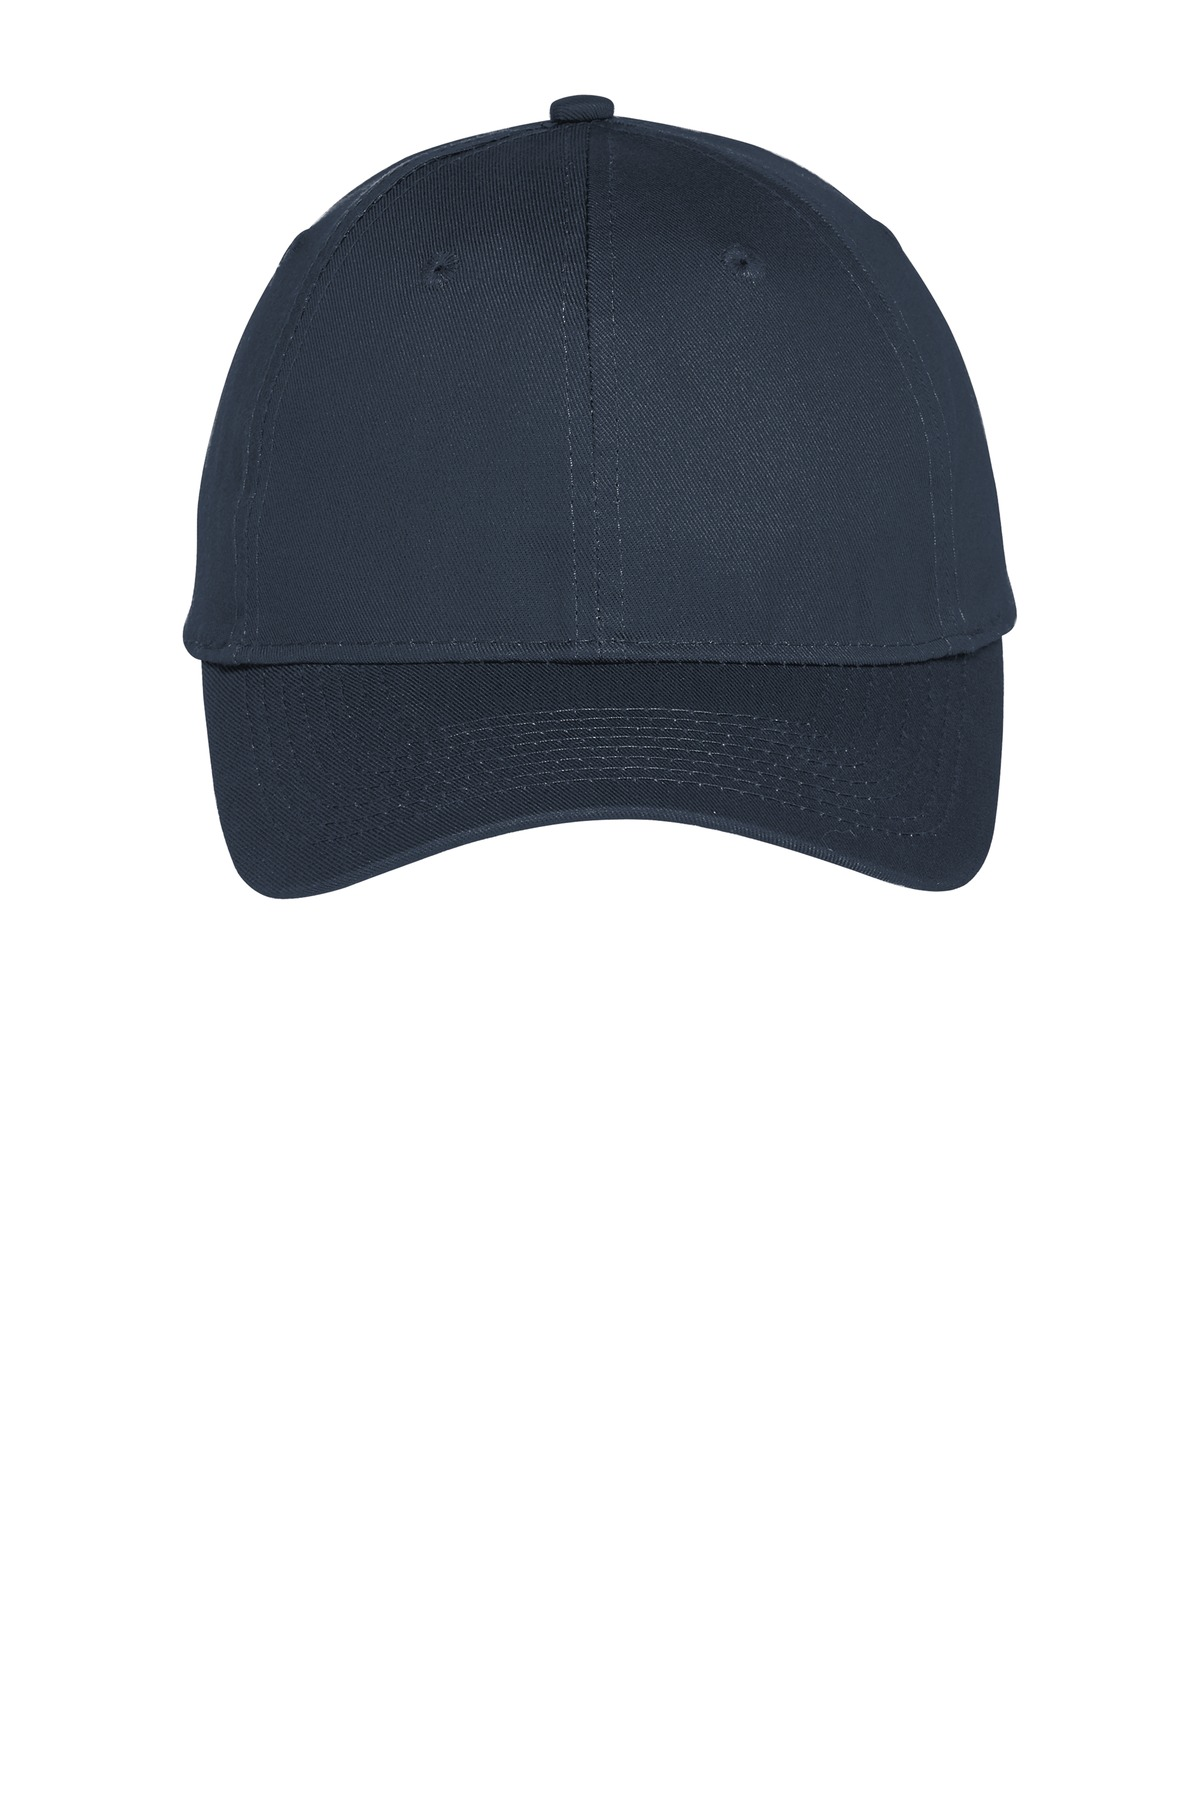 Port & Company ®  Six-Panel Unstructured Twill Cap. C914 - True Navy